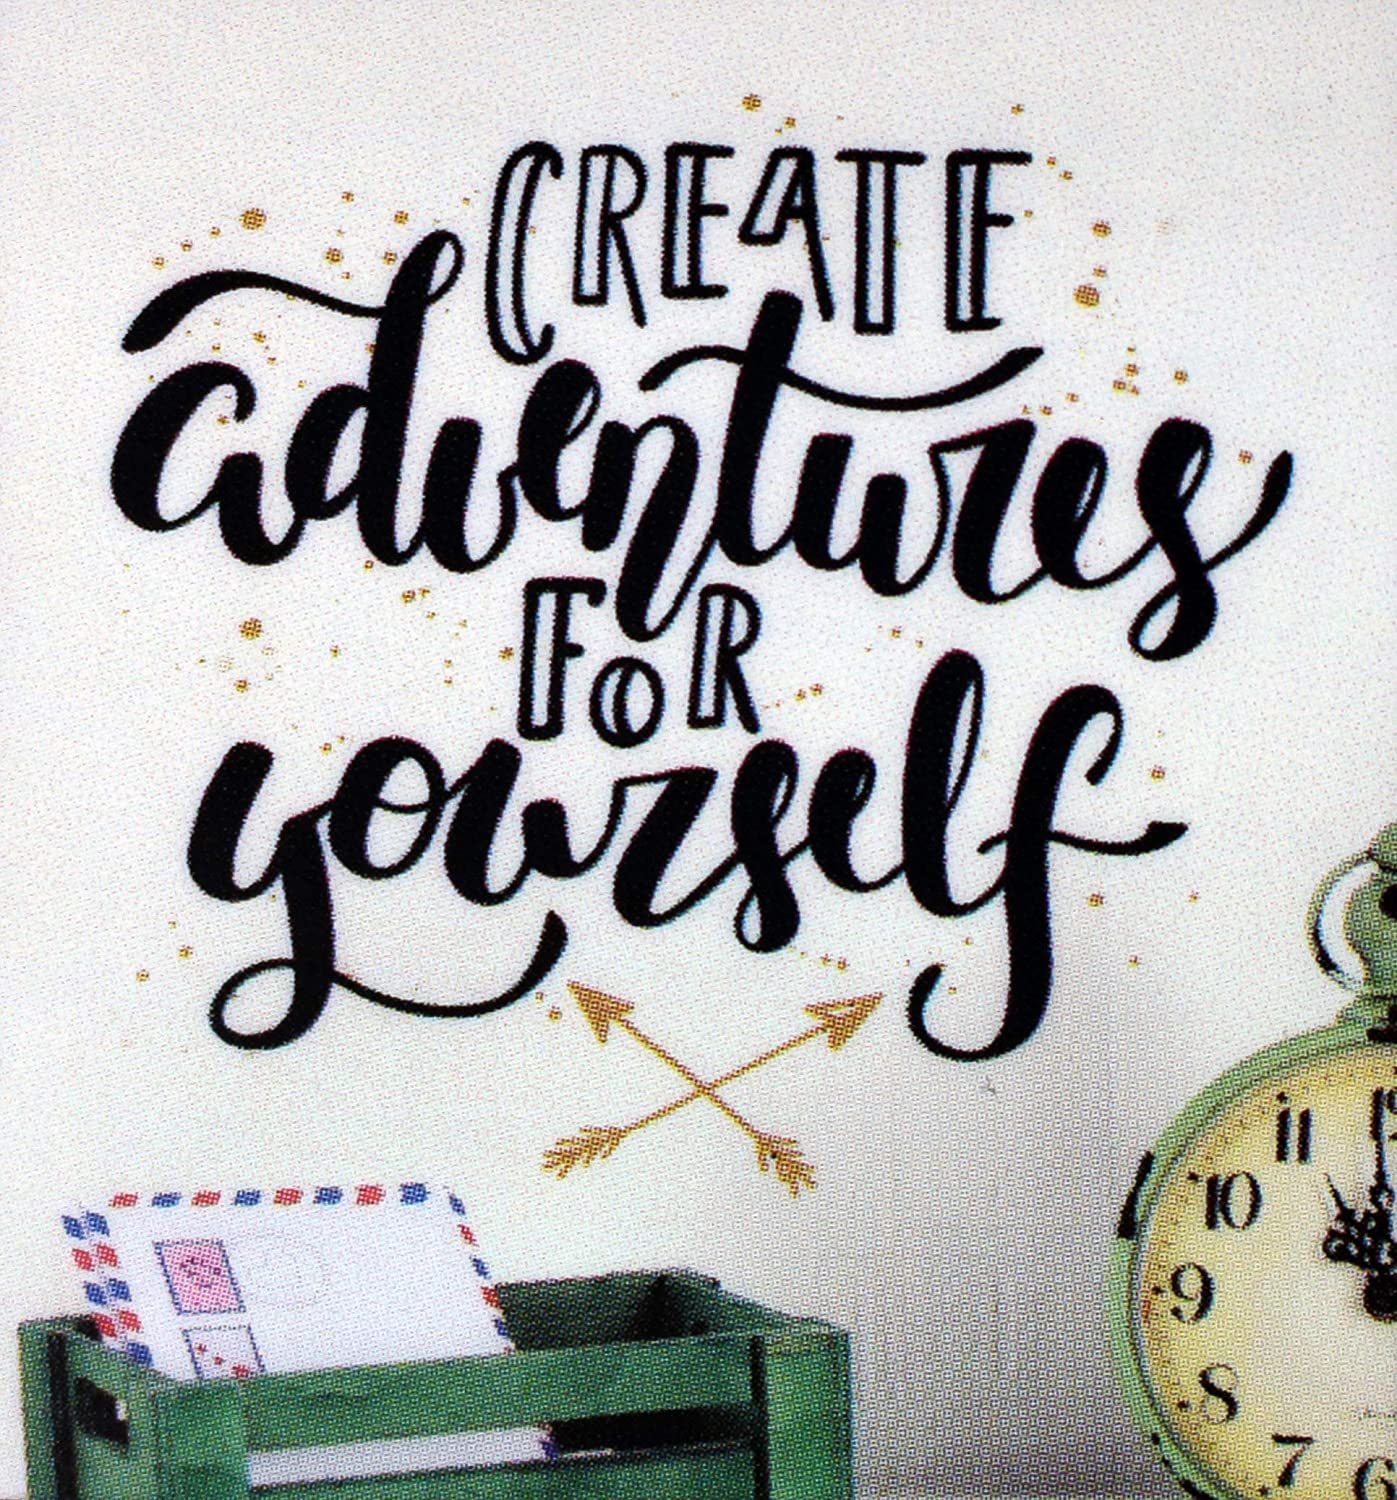 Inspirational Quote Bedroom Peel and Stick Create Adventure for Yourself Creative Decal DIY Self Sticking Vinyl Living Room Wall Sticker